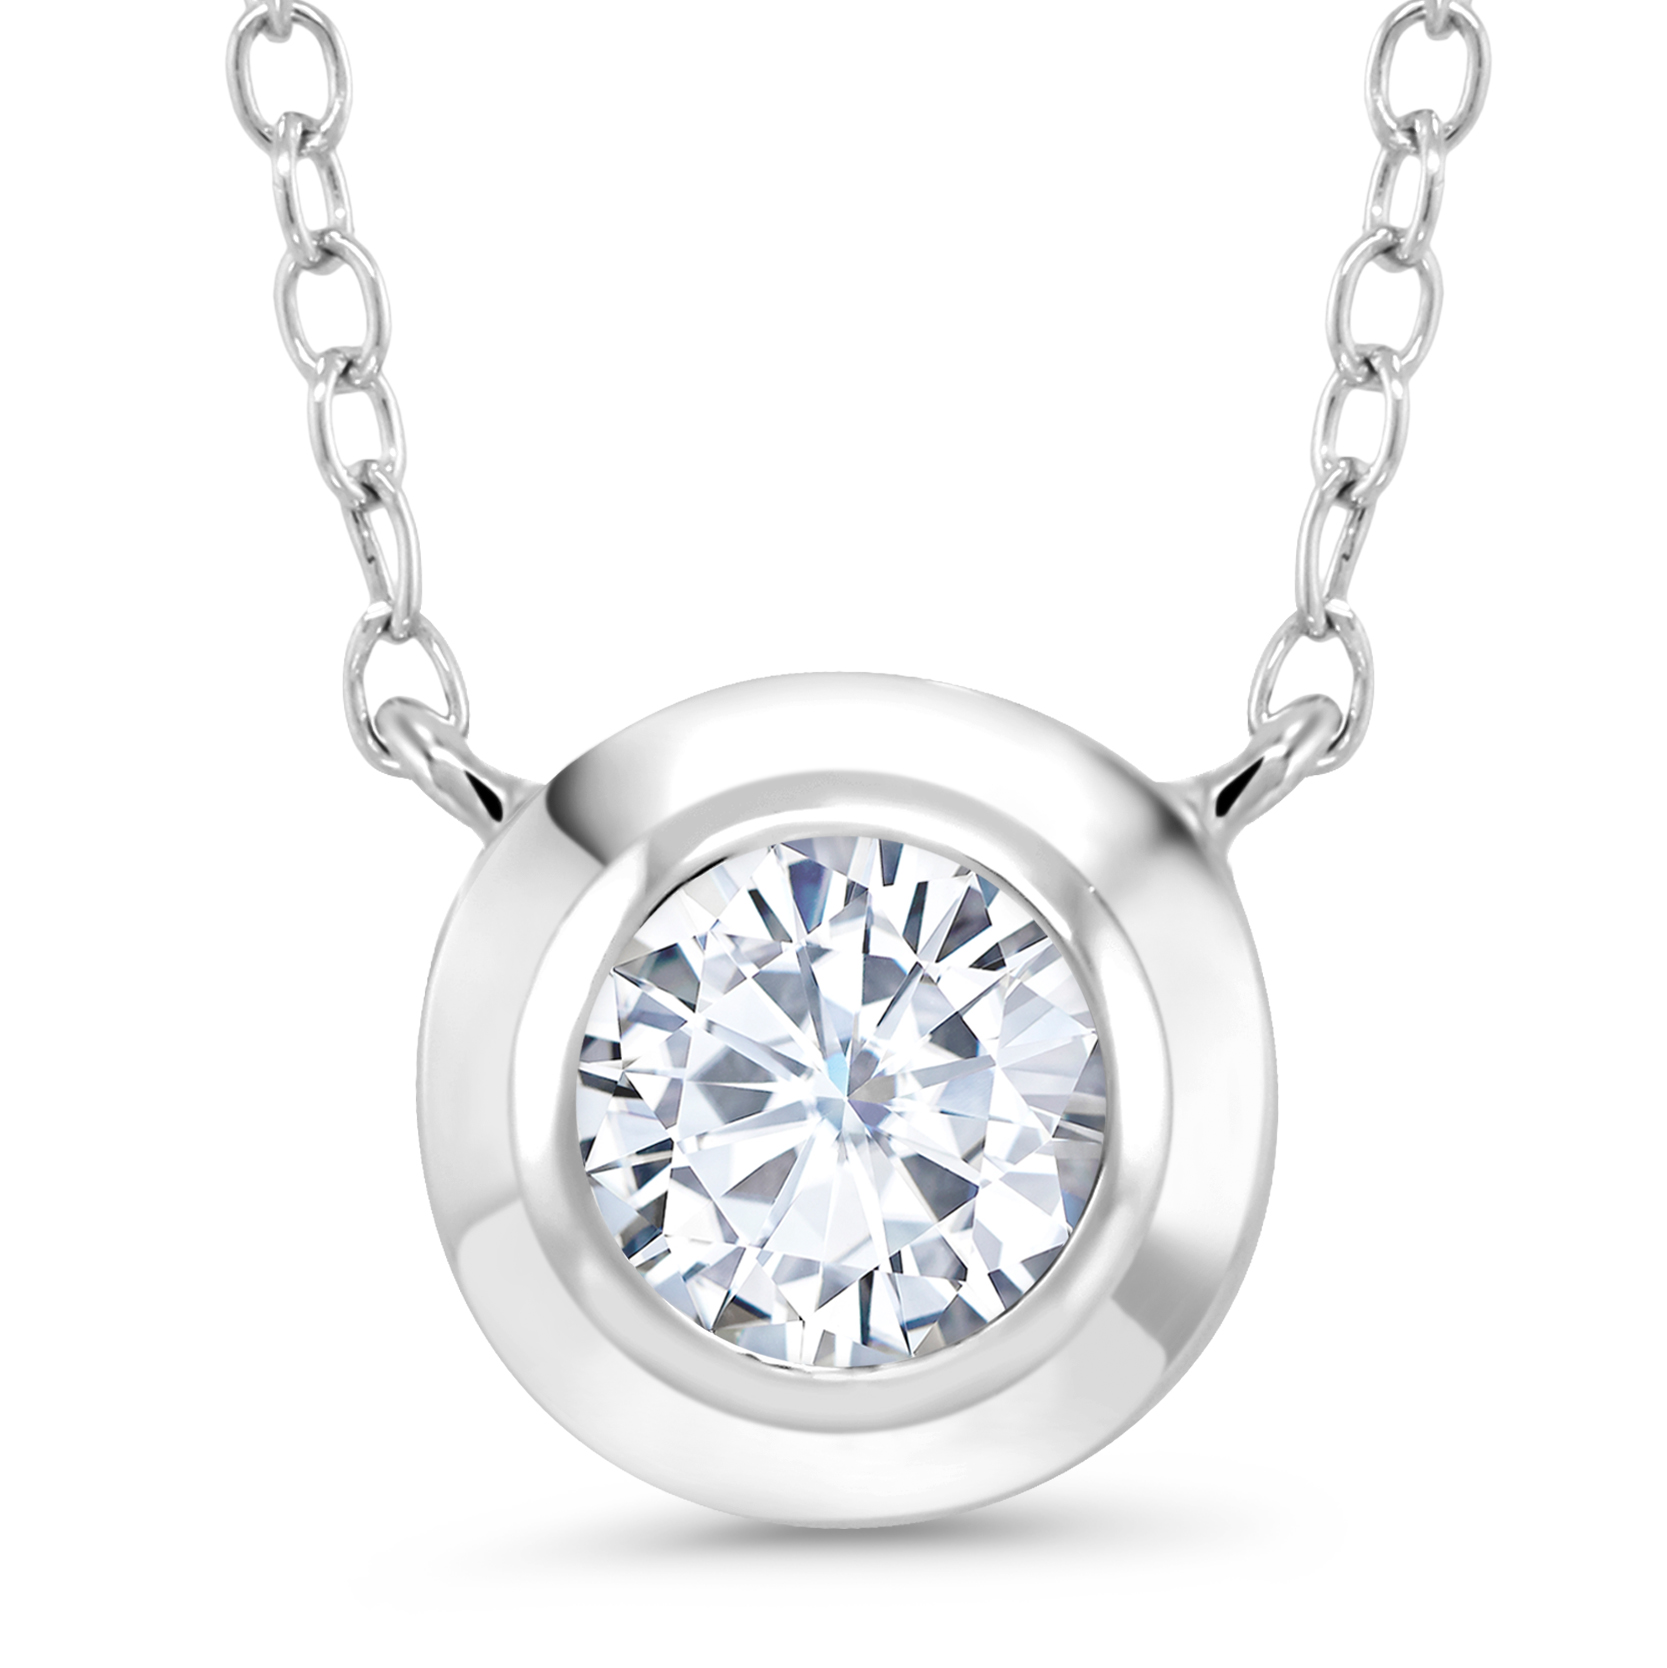 diamond necklaces round rings diamonds world loose moissanite sterling center necklace double ct simulated jewelry stones halo silver pendent earrings collections bail cubic setting in best pendants the veneer